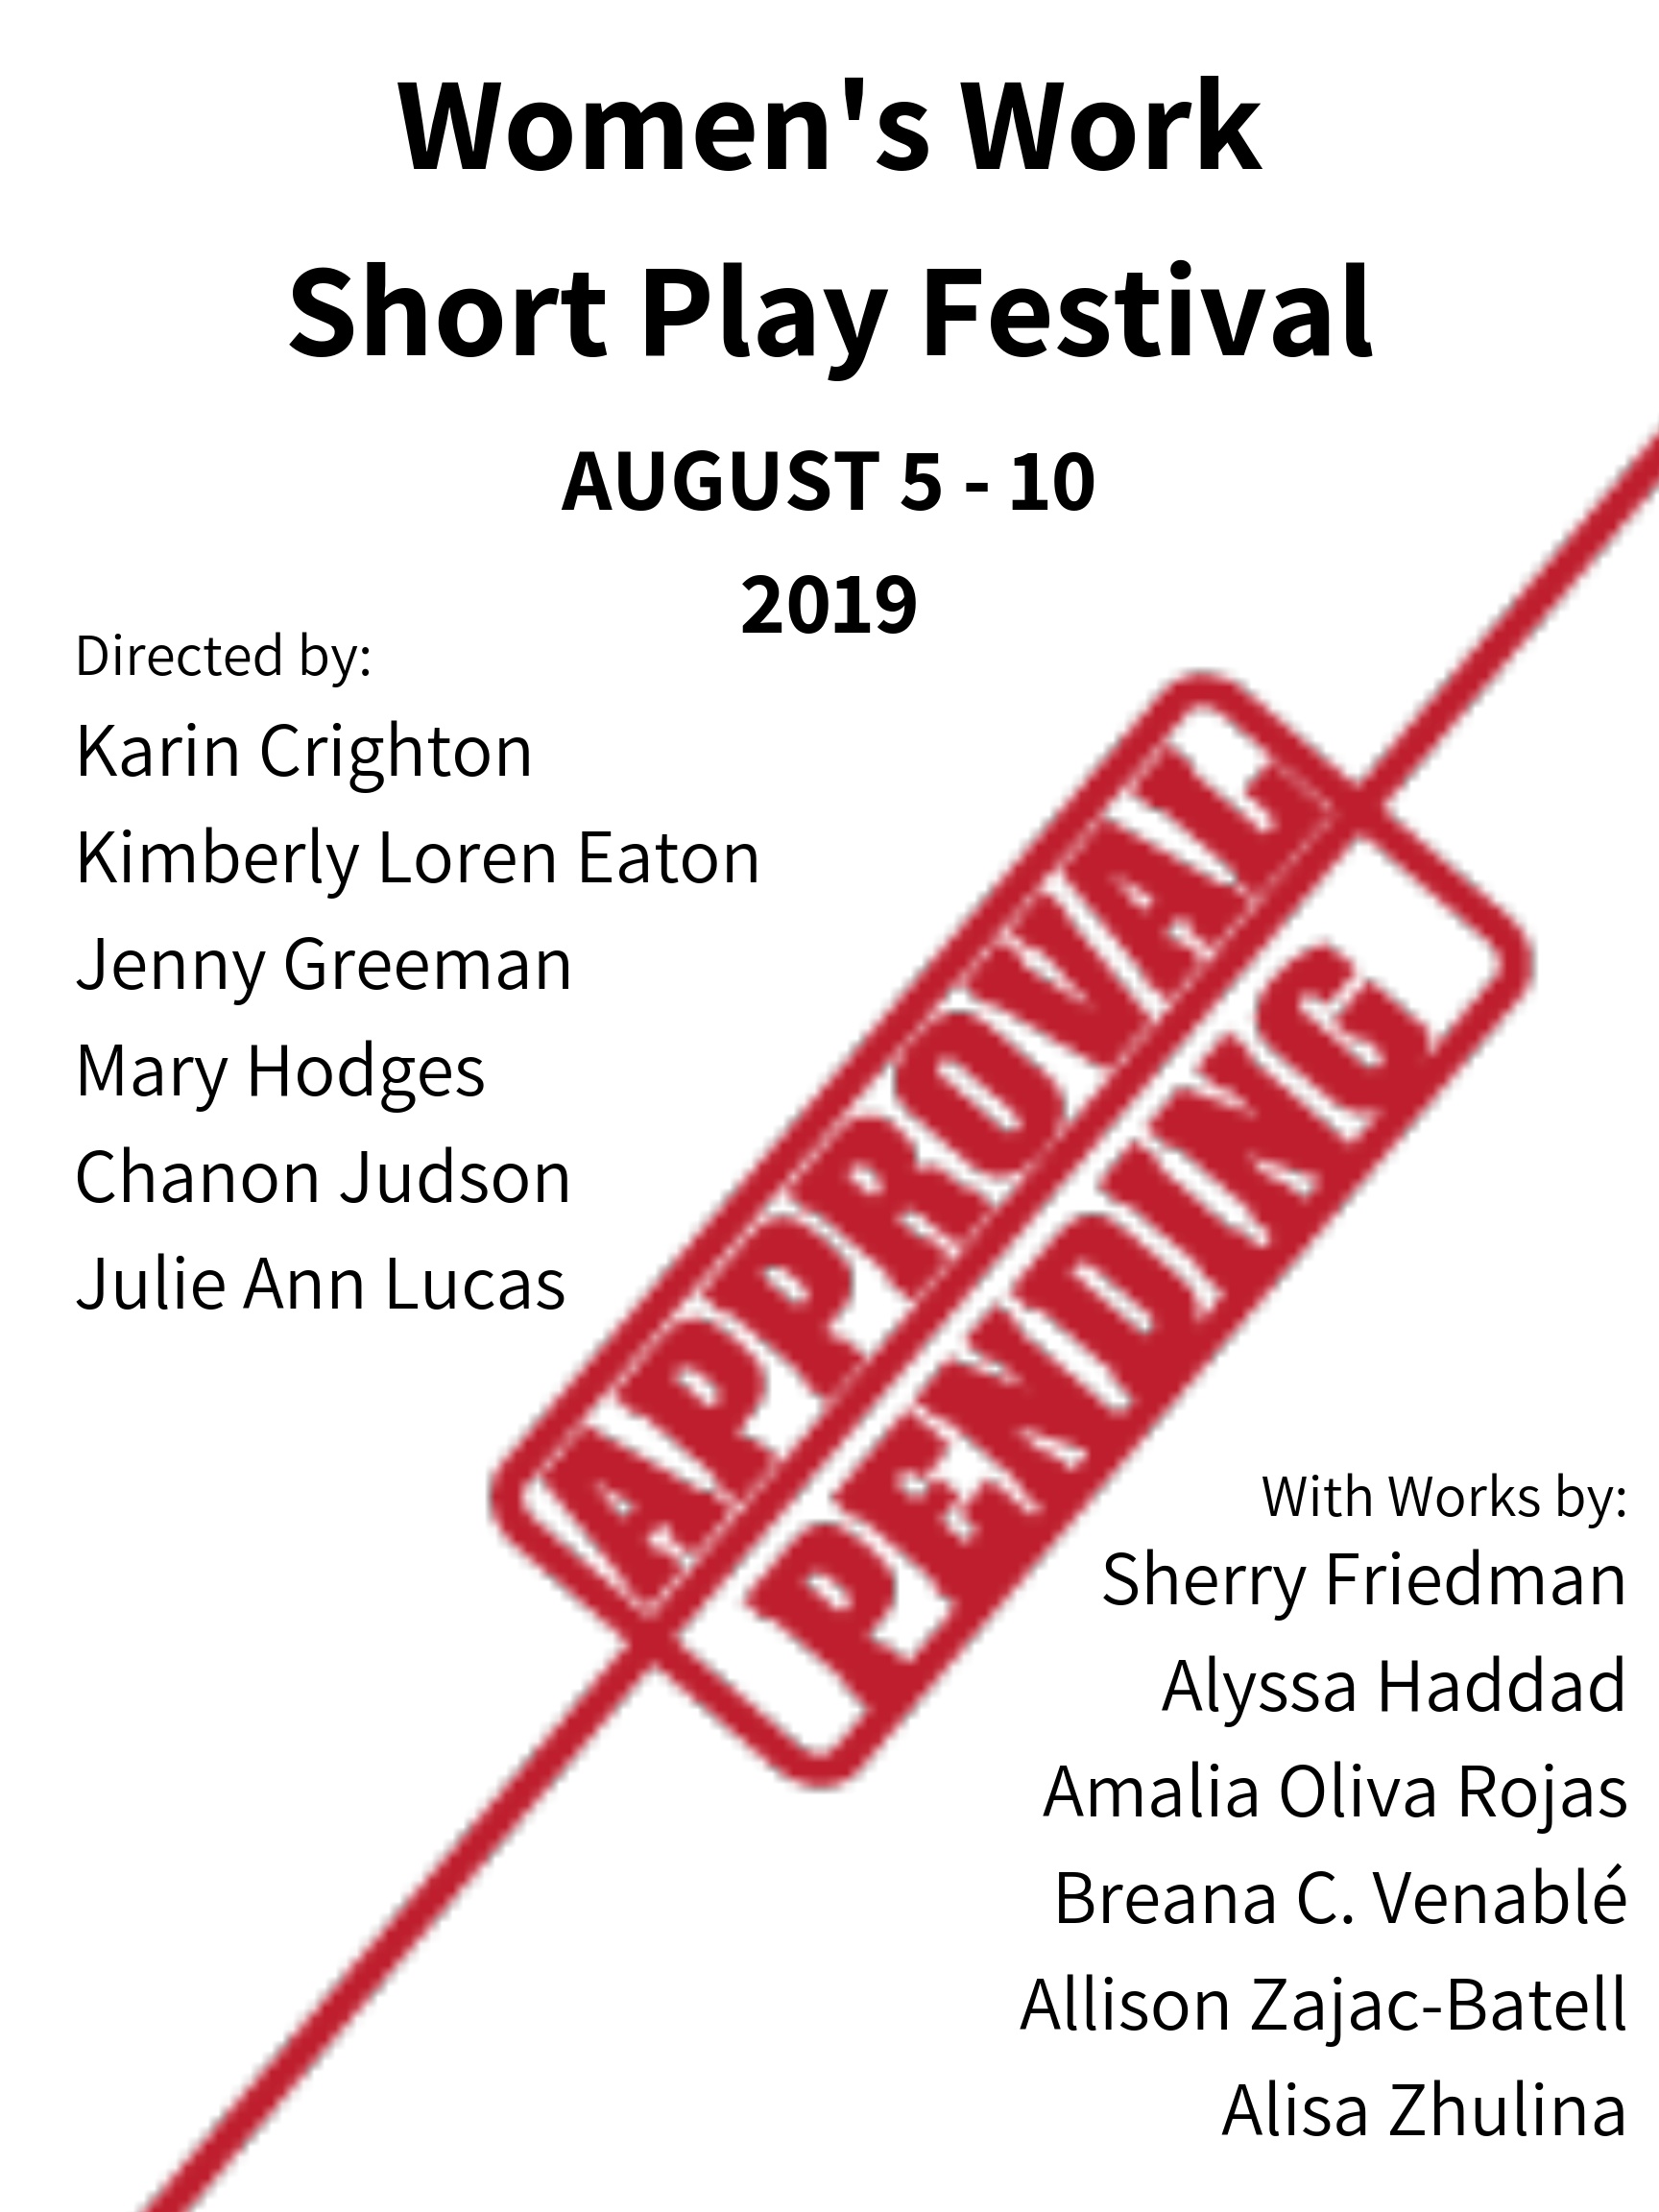 Copy of women's work short play festival (1).png